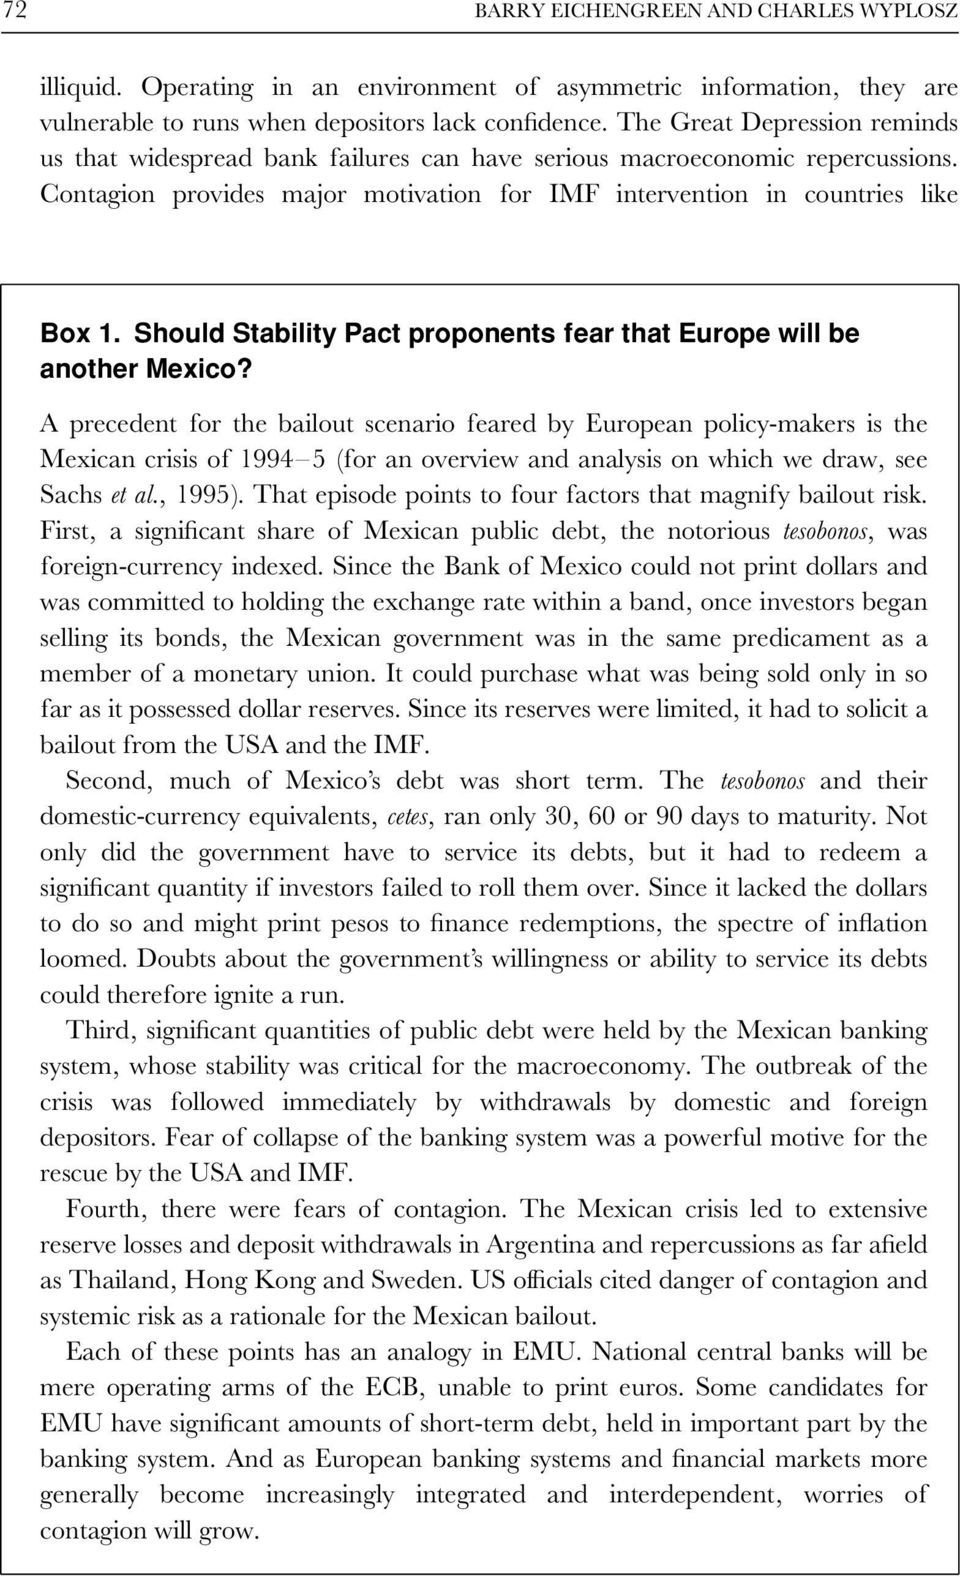 Should Stability Pact proponents fear that Europe will be another Mexico?